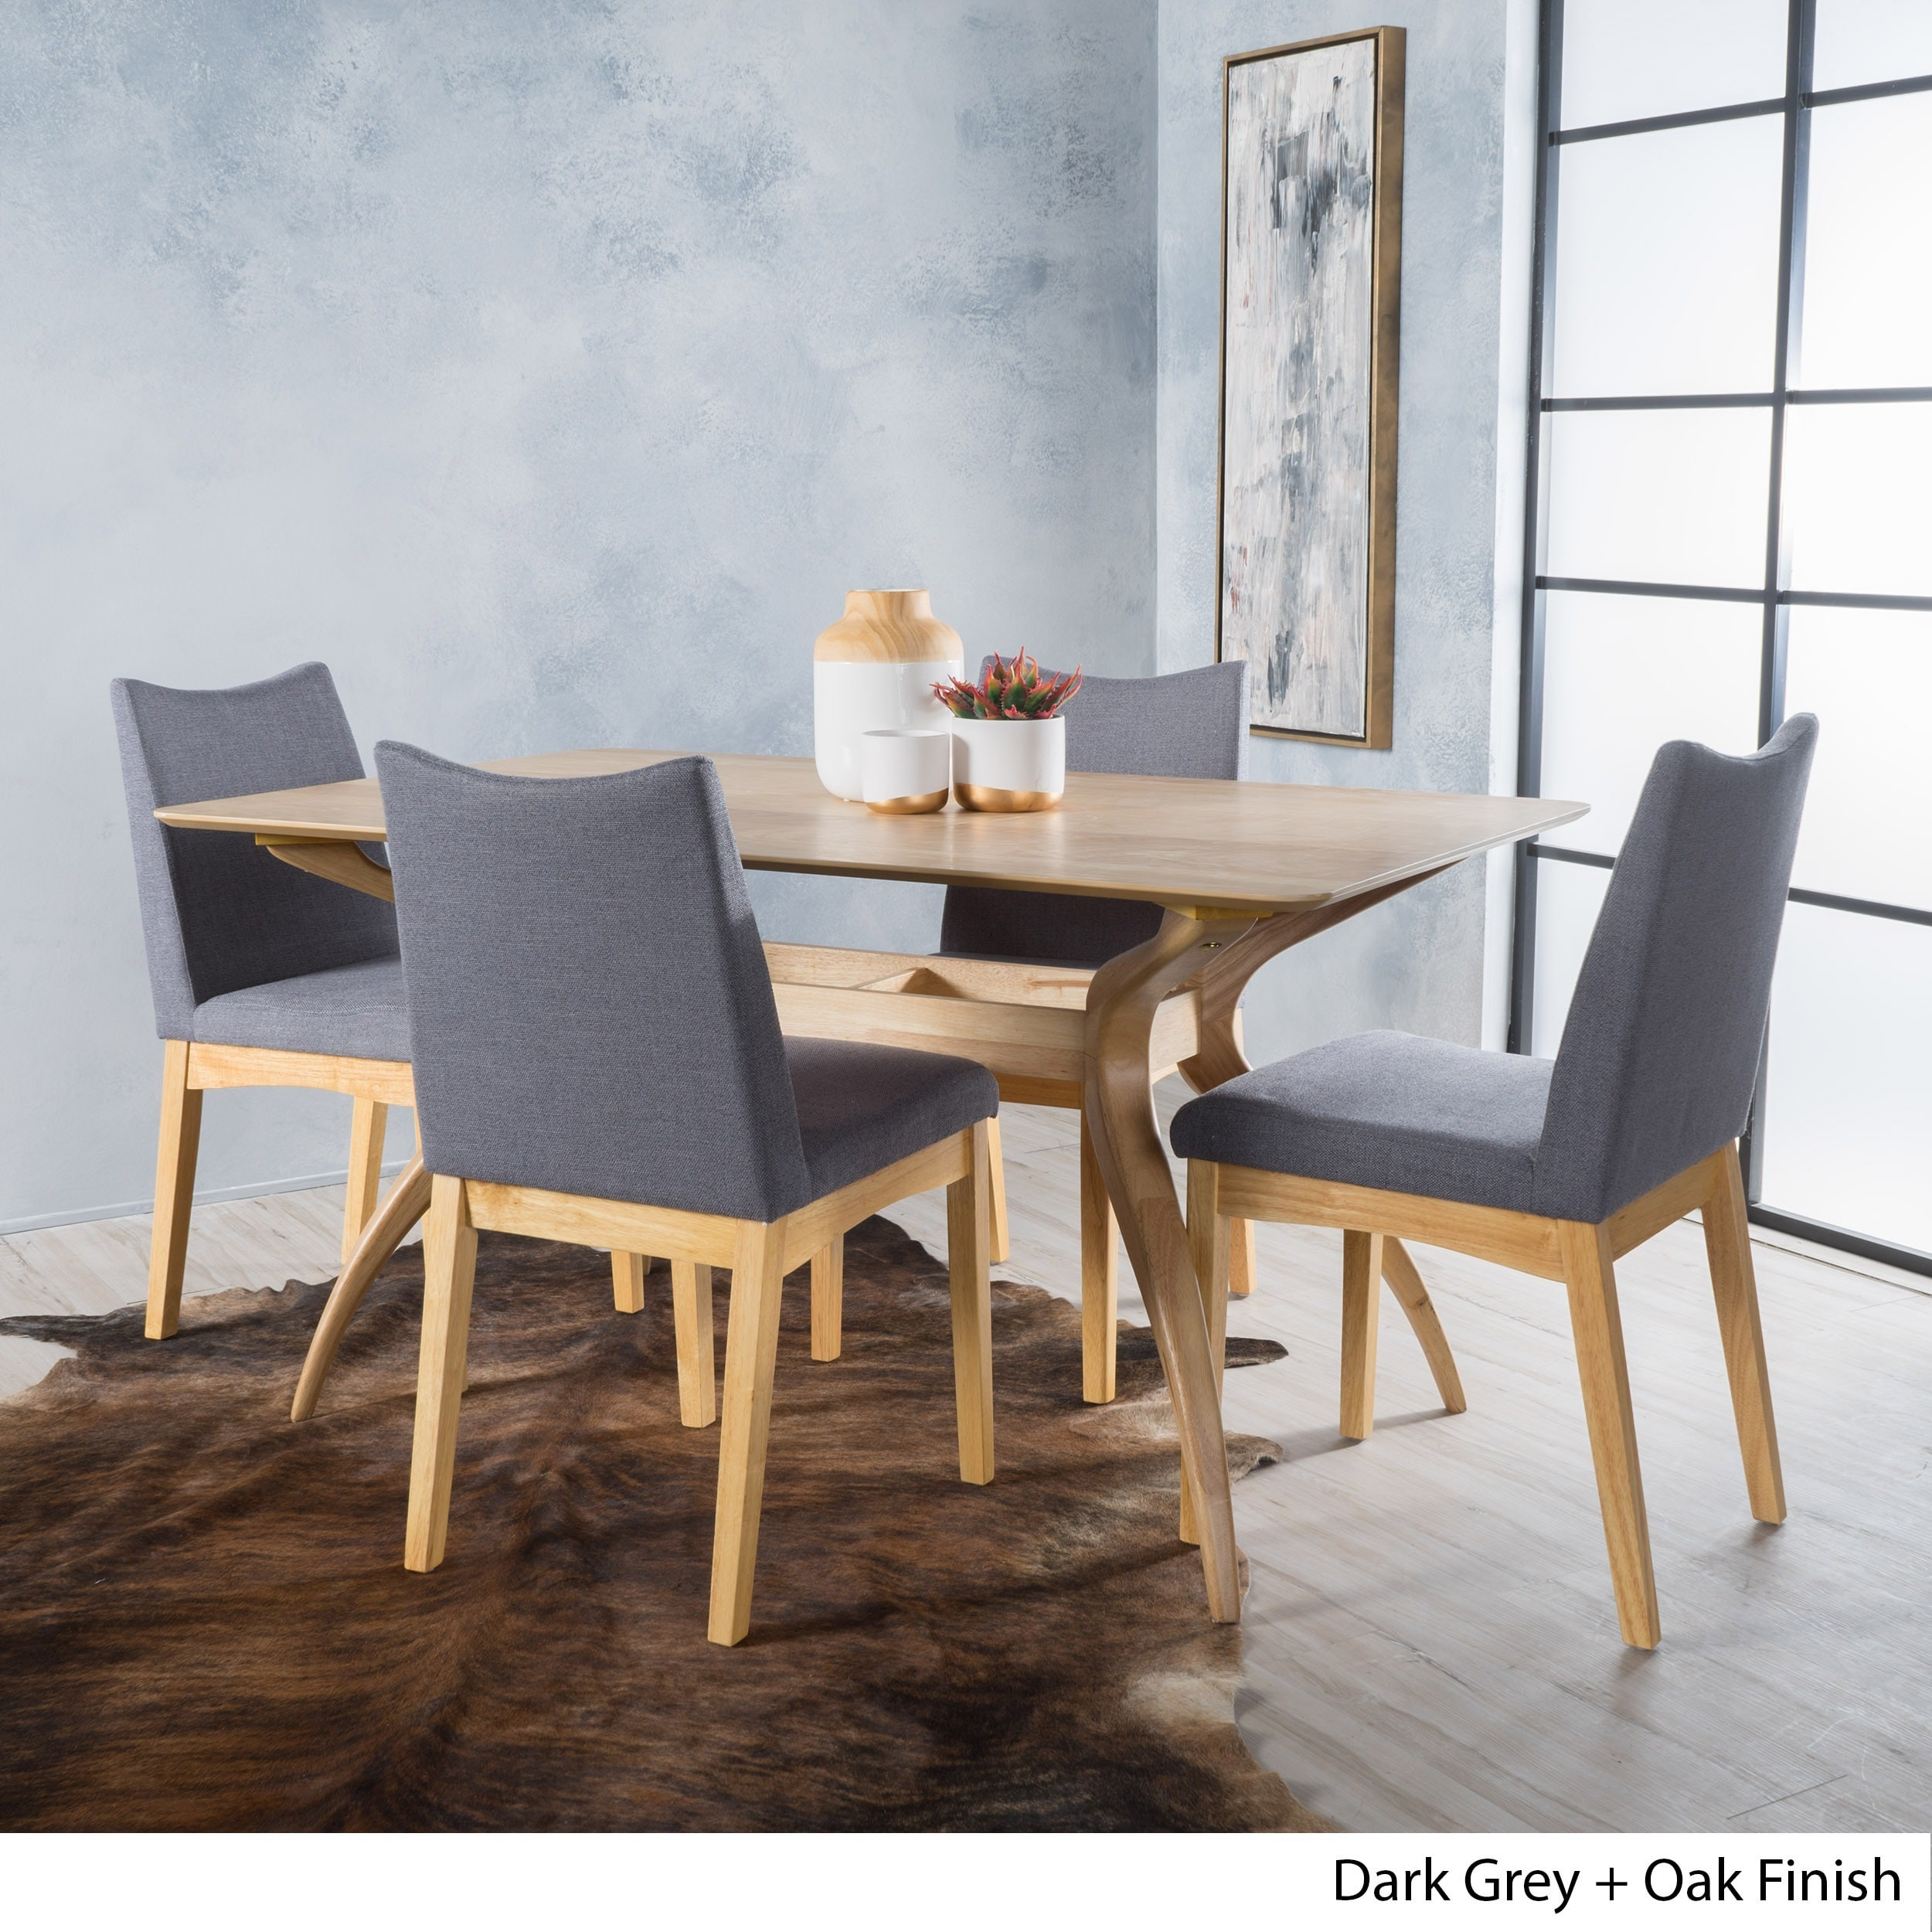 Details About Dimitri 5 Piece Wood Large Rectangular Mid Century Dining Set With Curved Legs